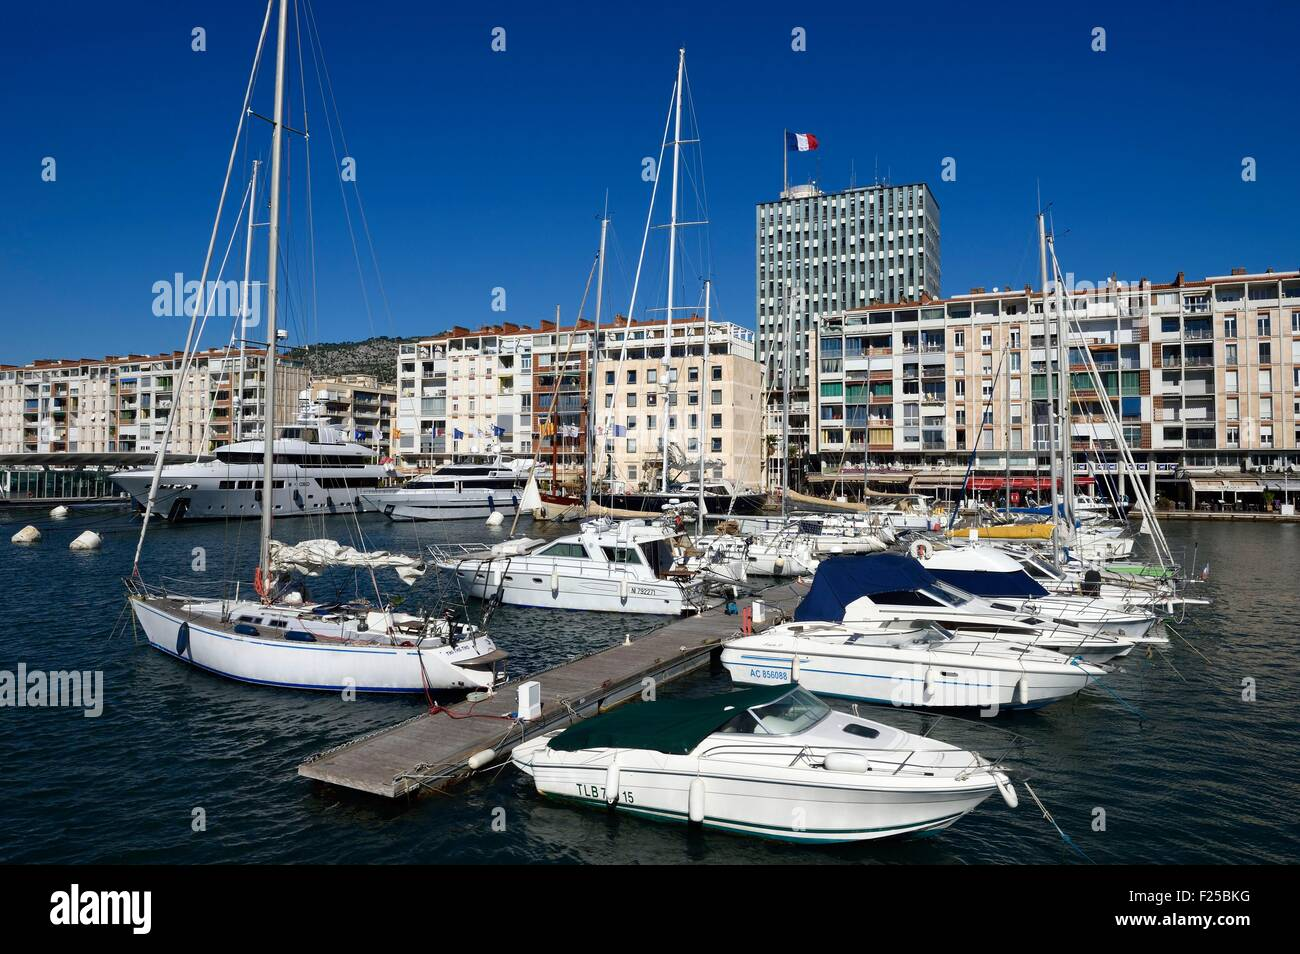 France, Var, Toulon, the port, apartment blocks designed by De Mailly following the 1944 bombing - Stock Image